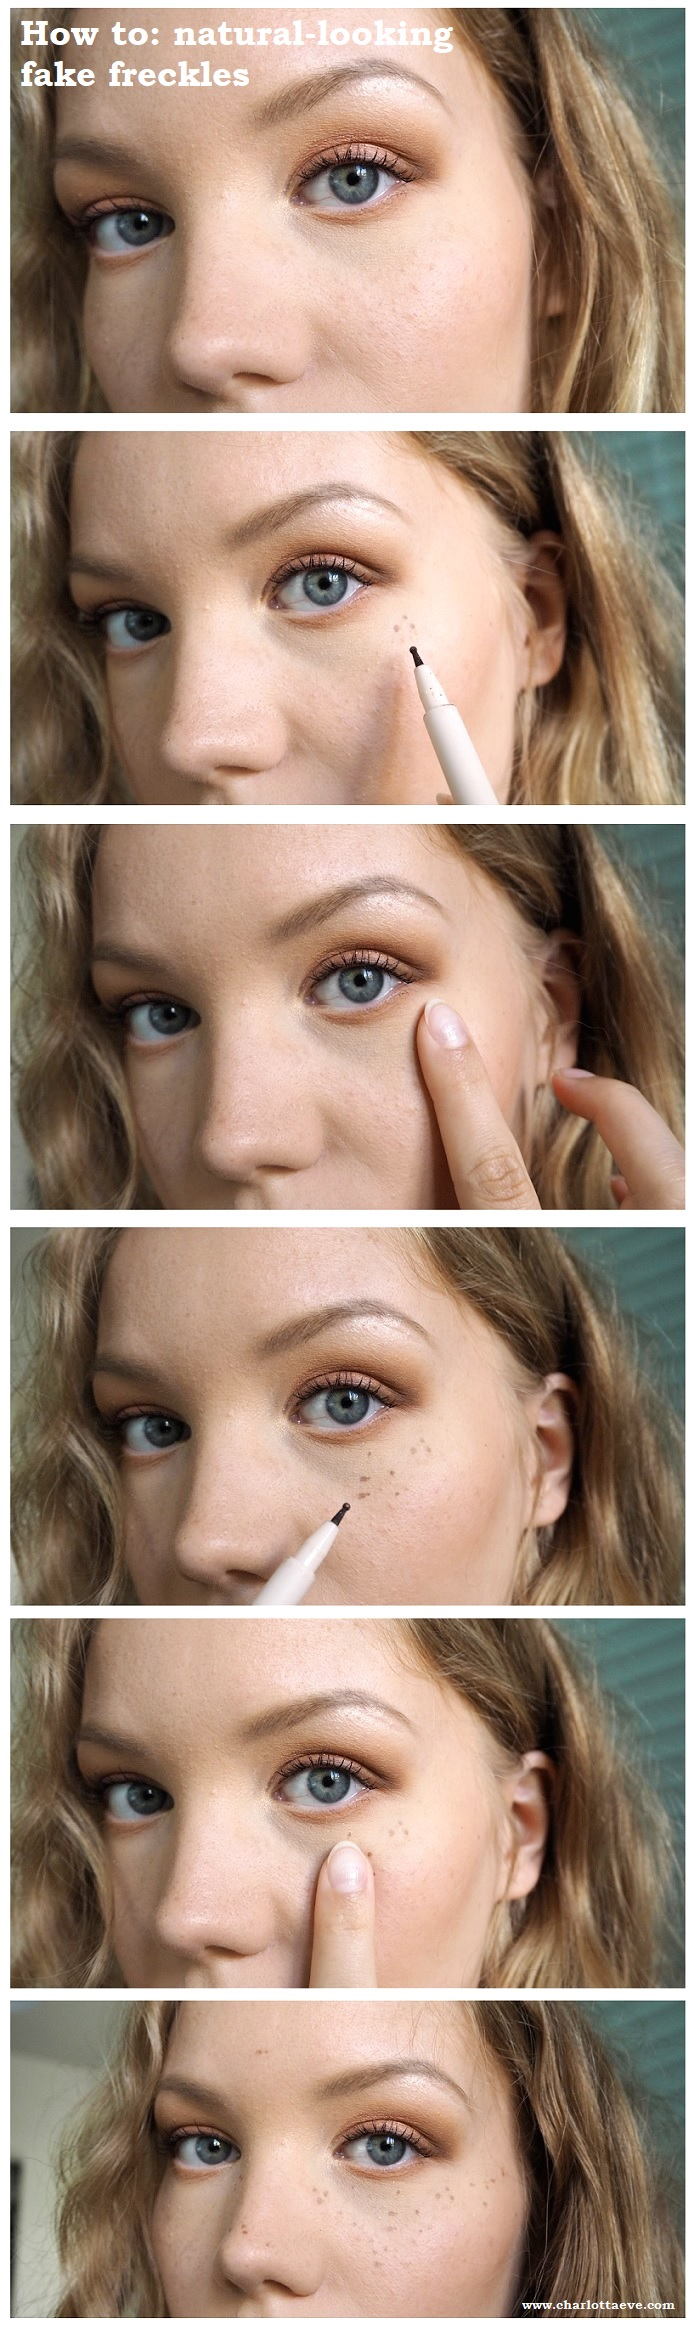 fake freckles tutorial